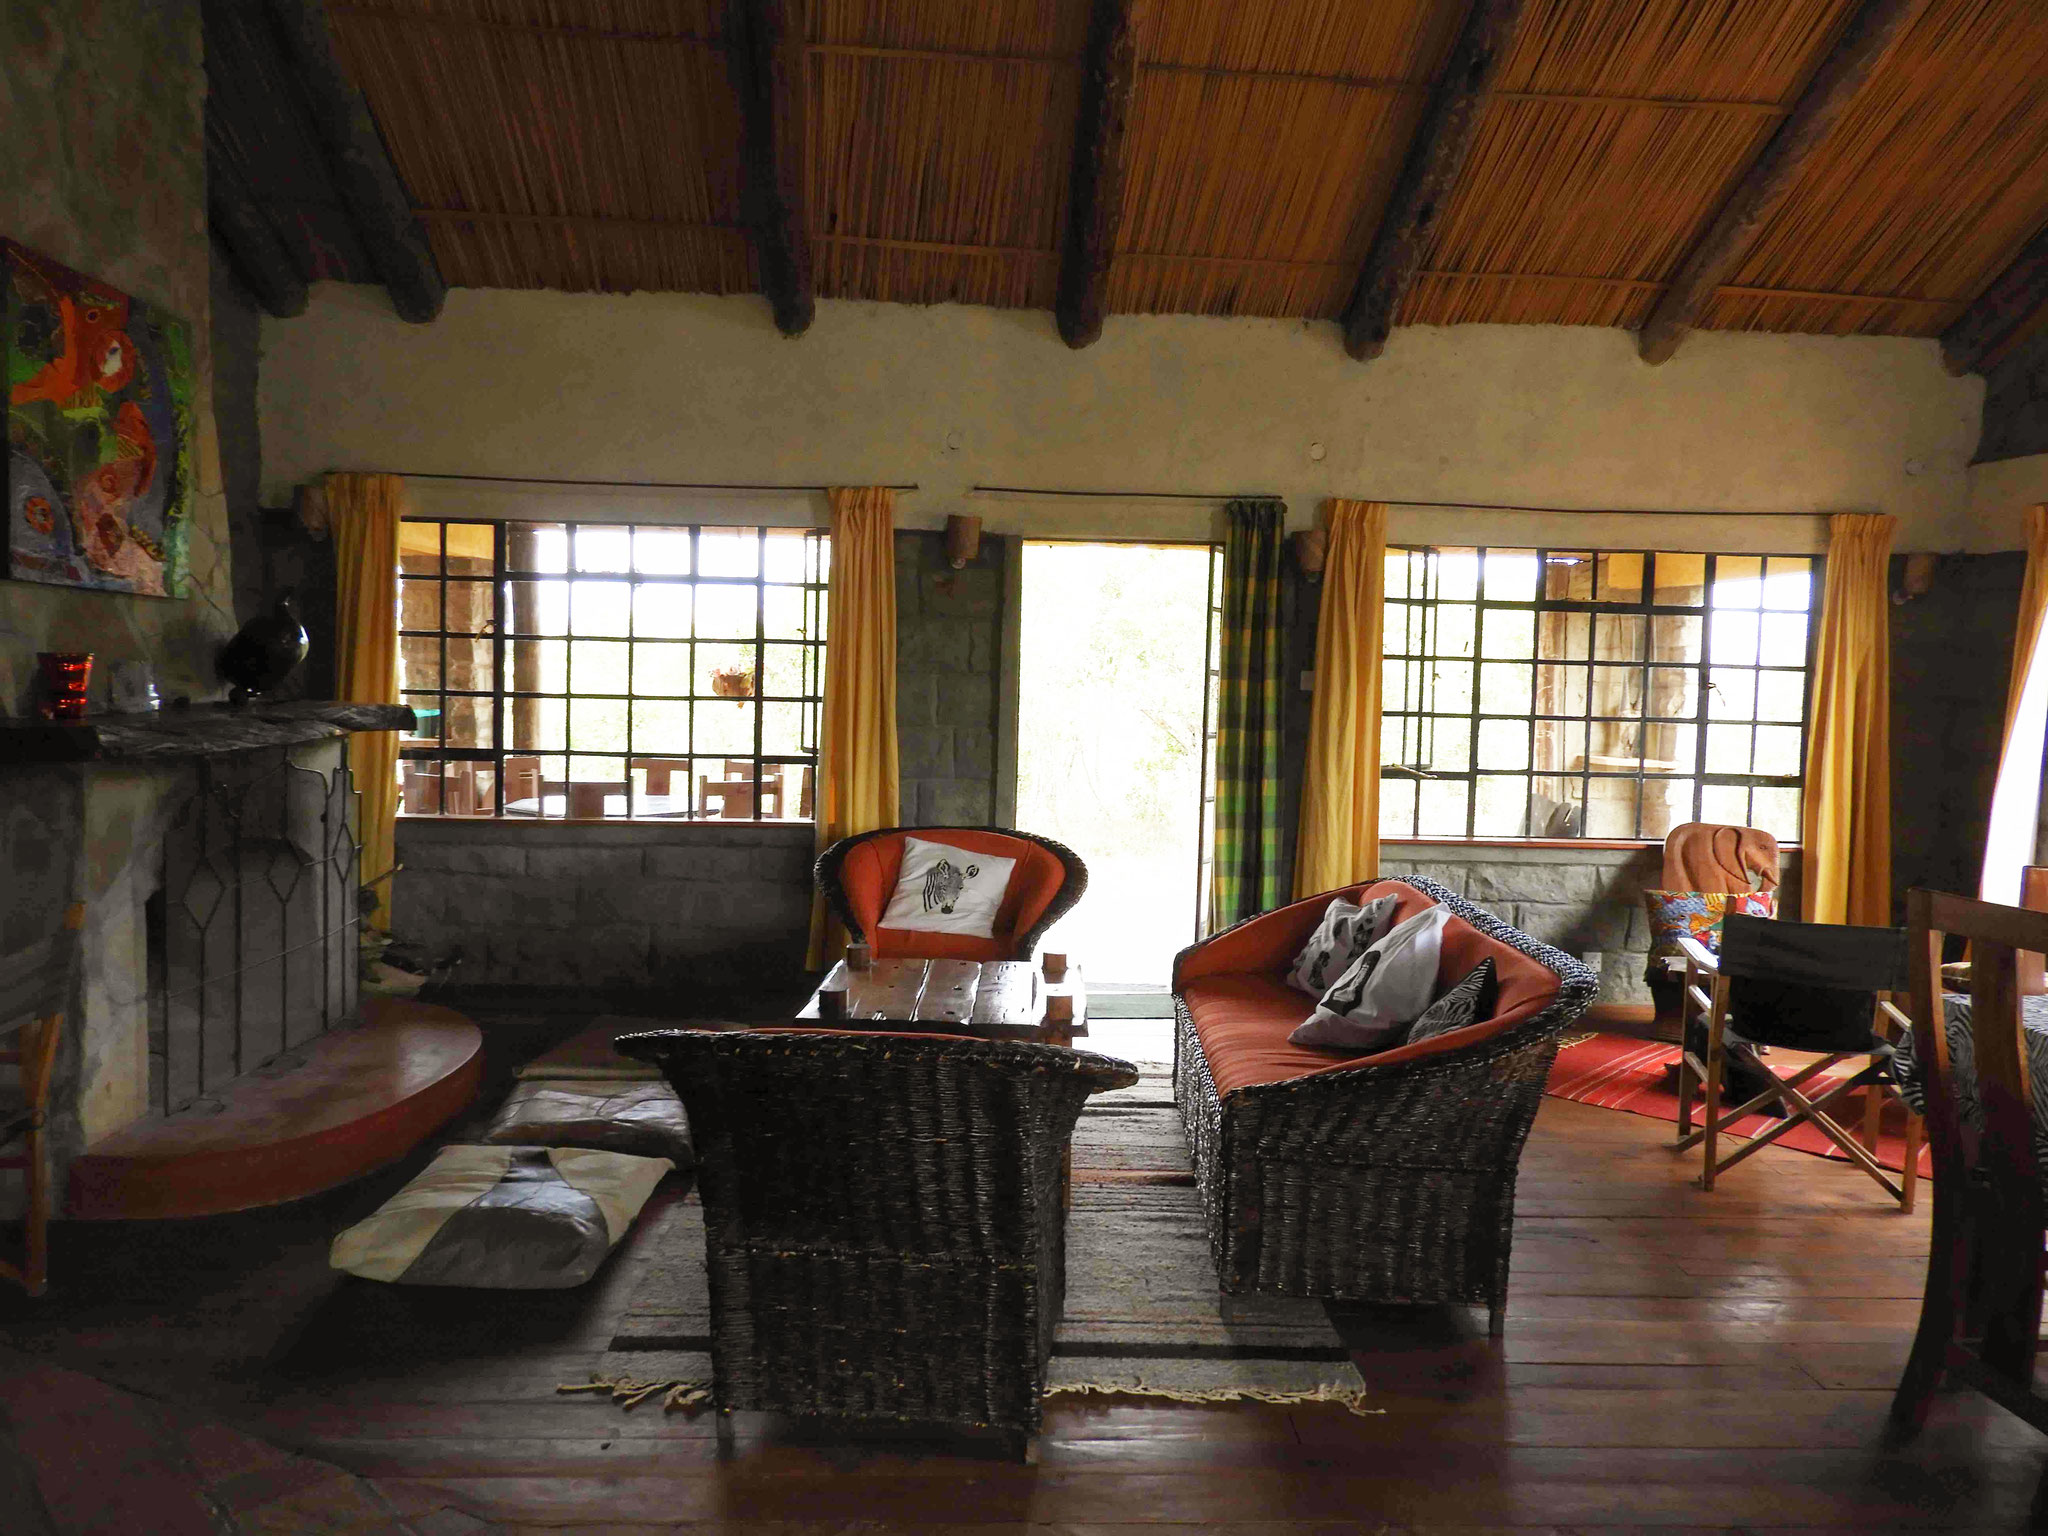 Gelassenheit durch Resilienz in Kenia - Sandai Lodge